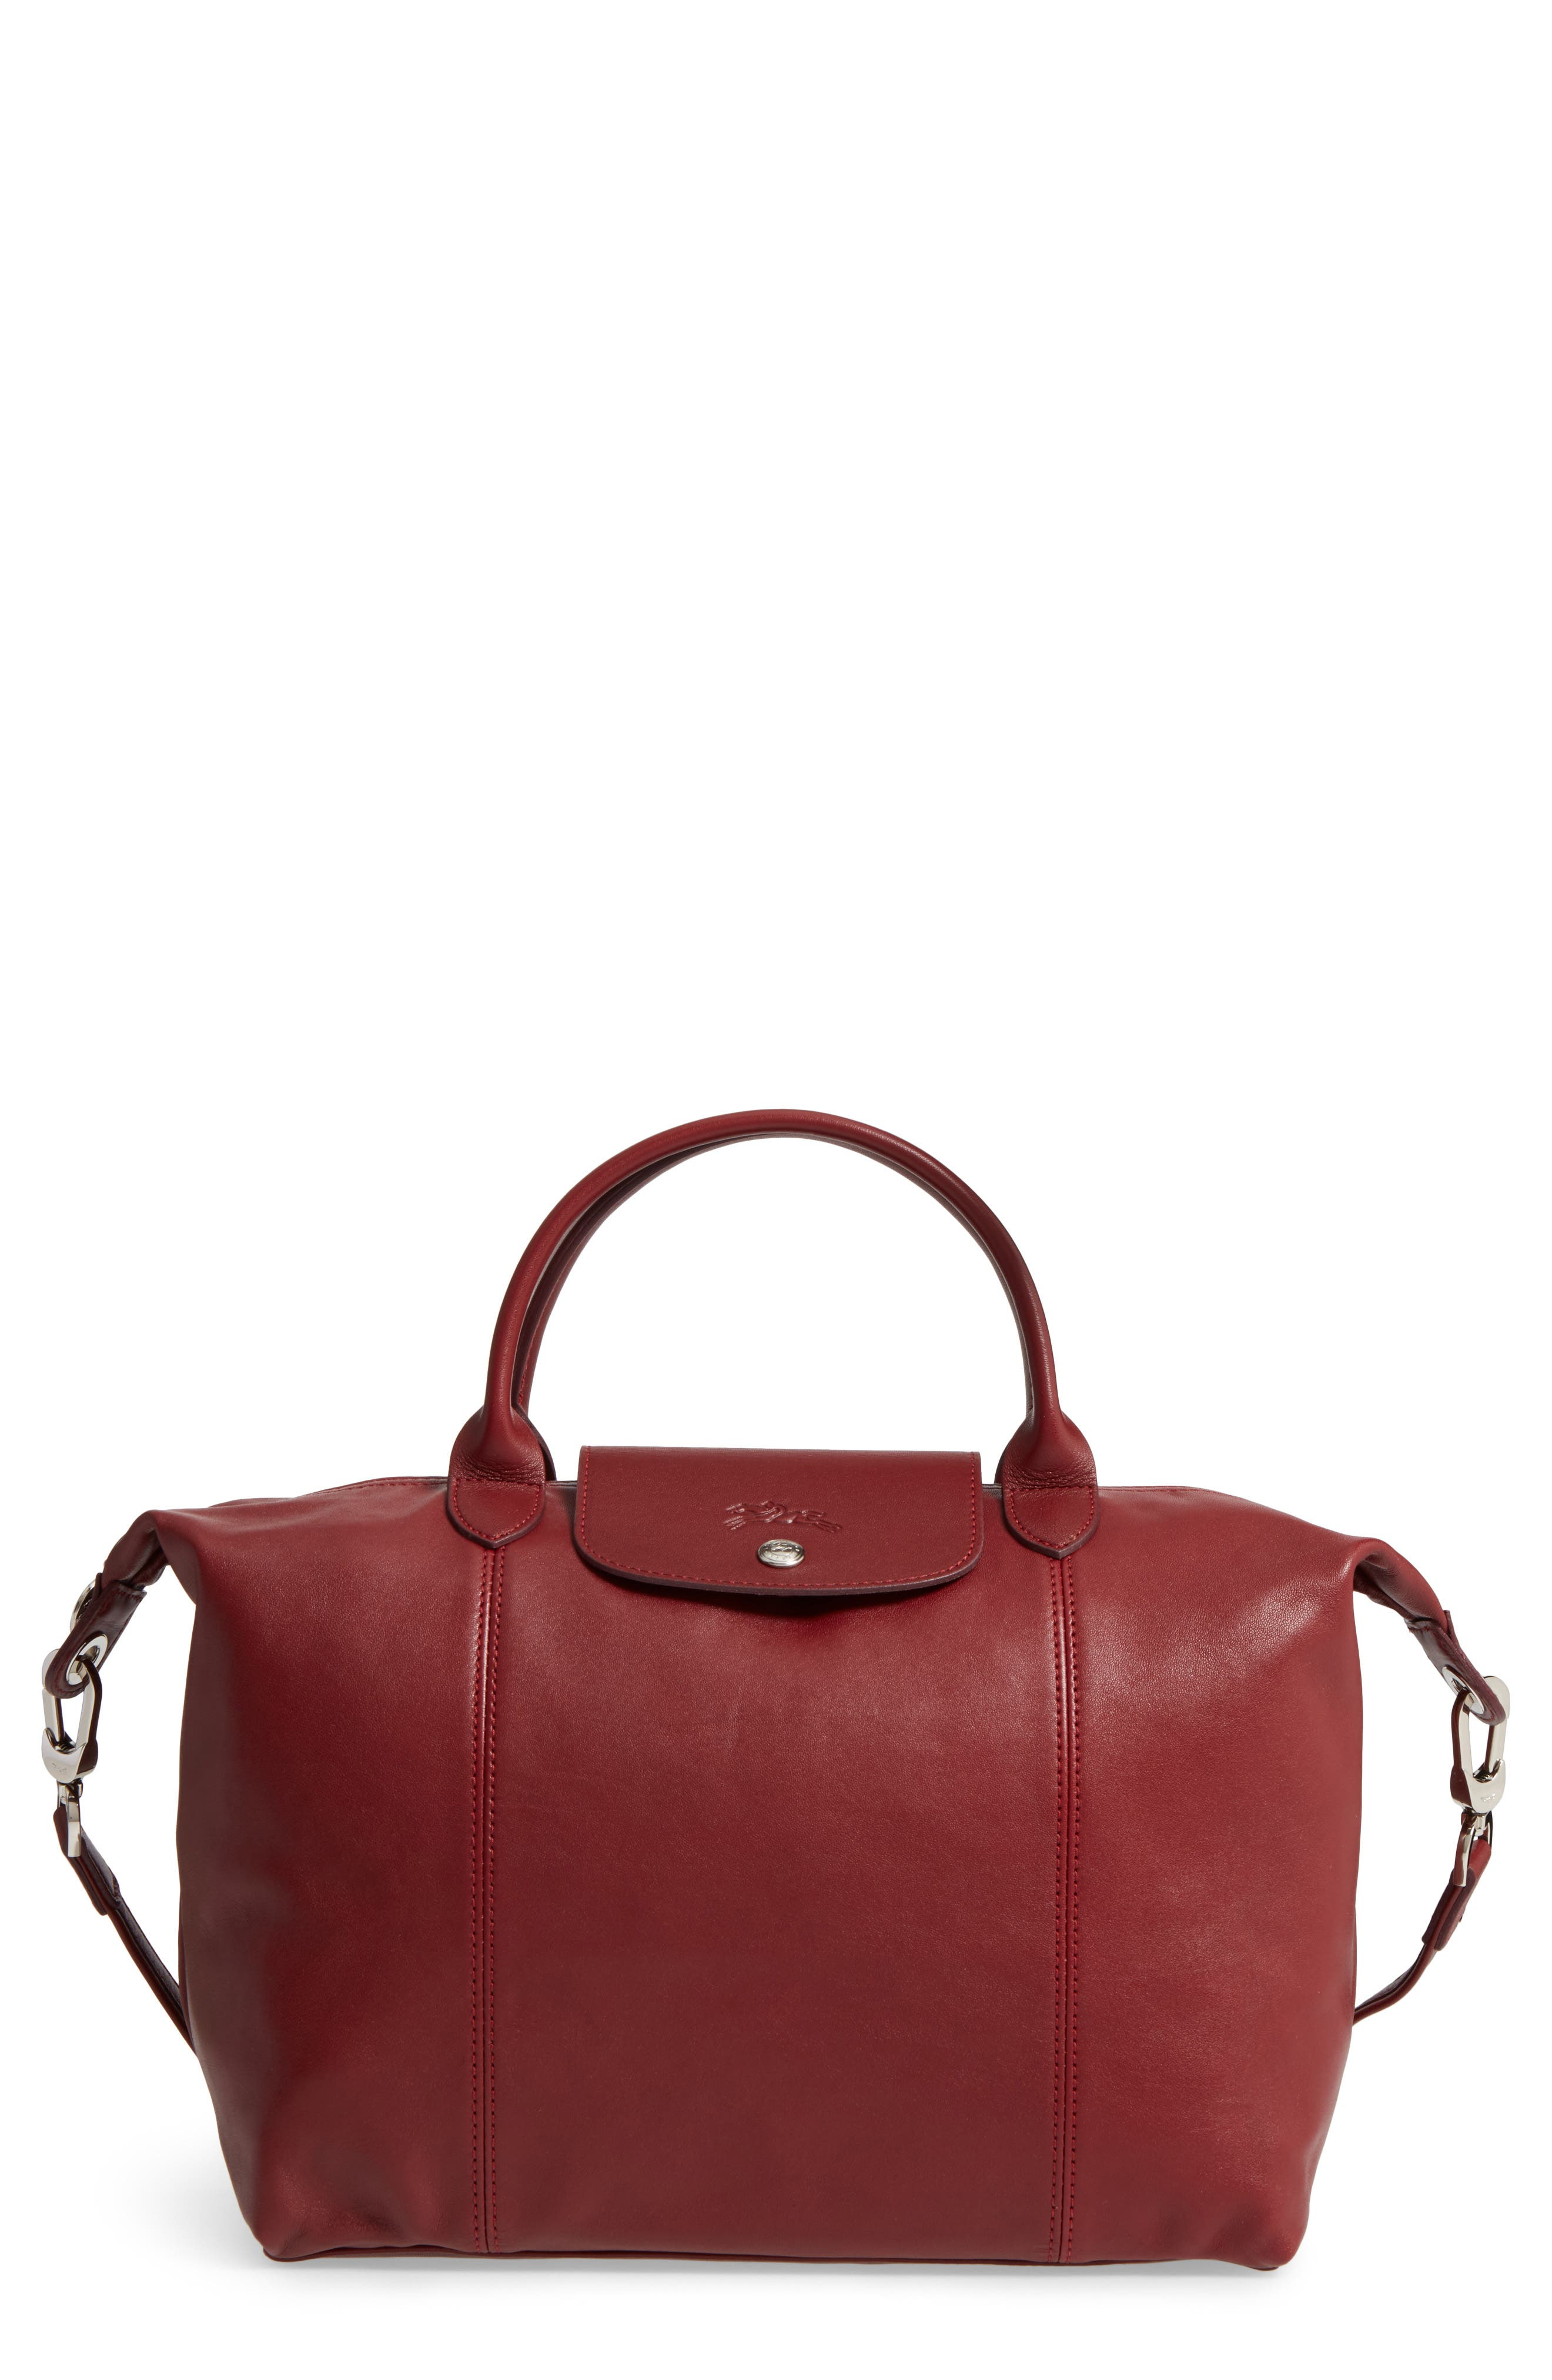 Medium 'Le Pliage Cuir' Leather Top Handle Tote,                             Main thumbnail 25, color,